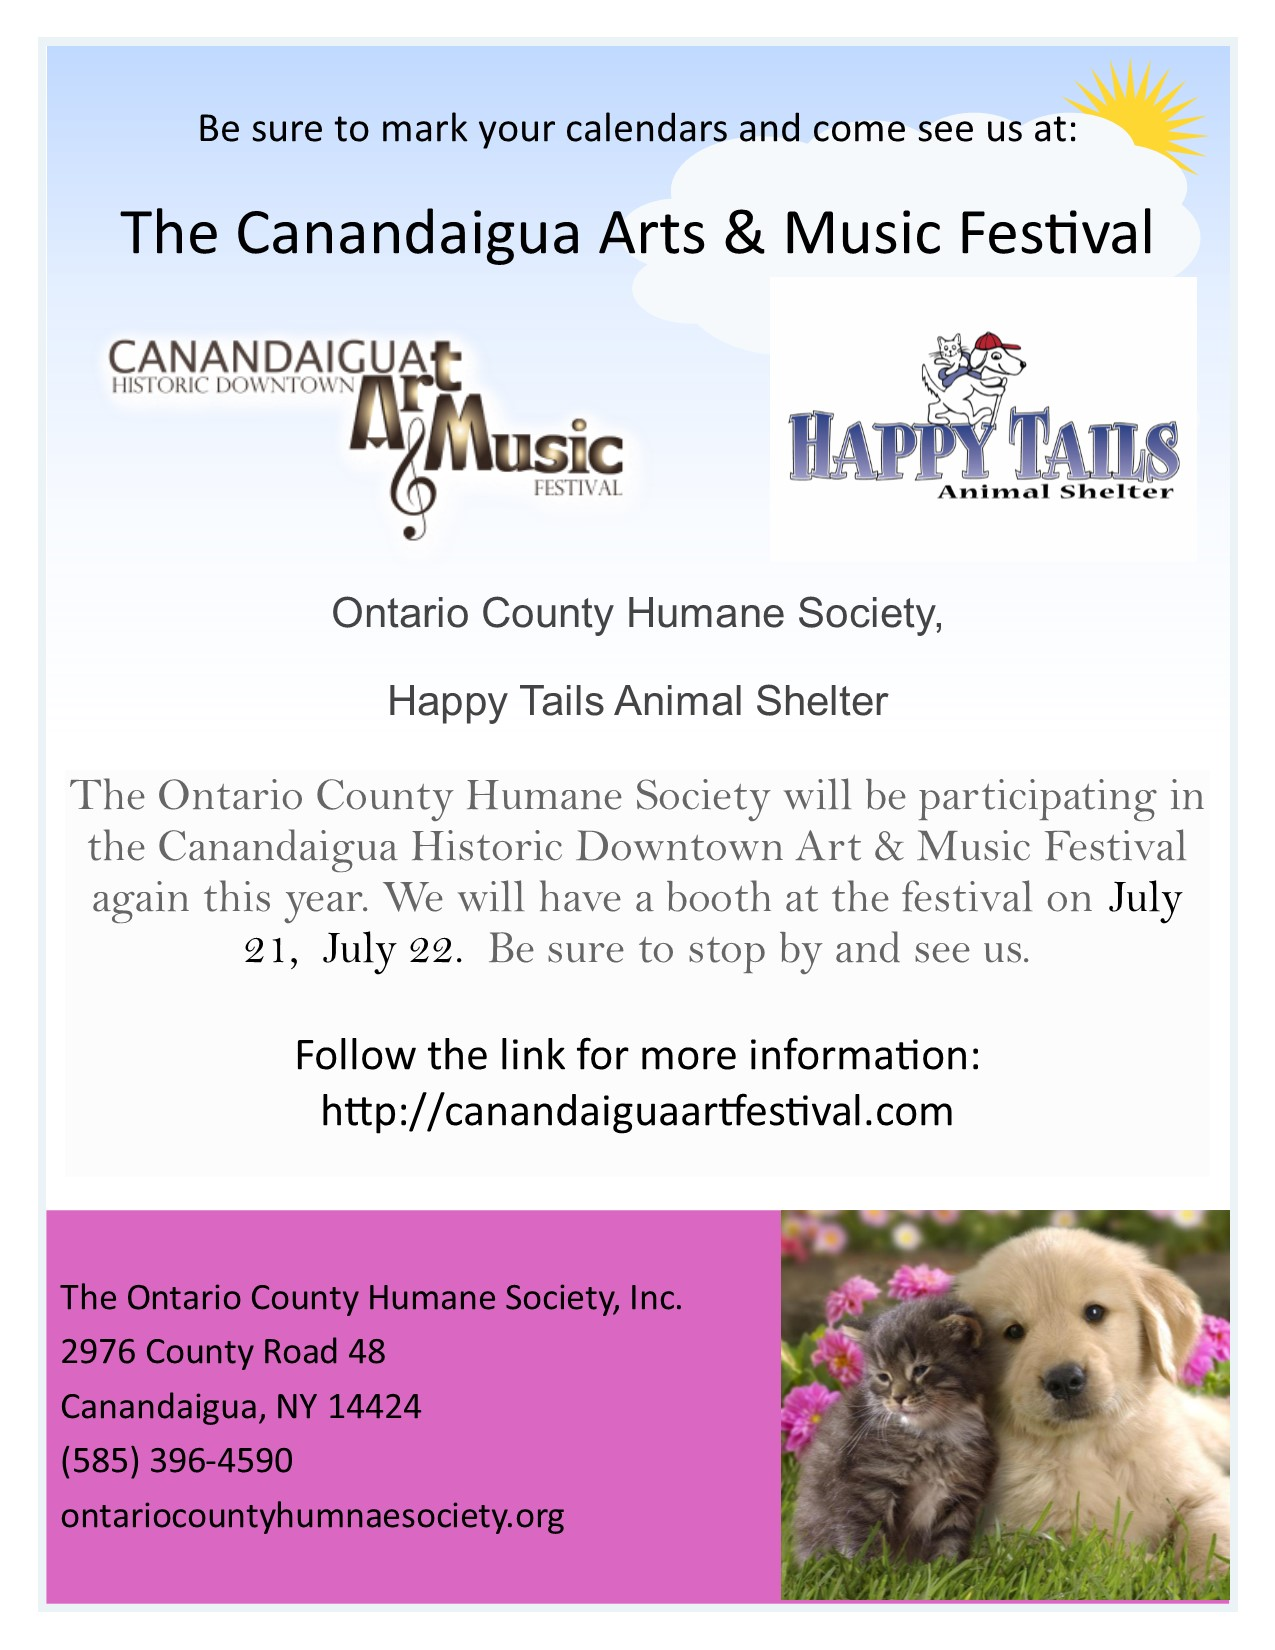 Canandaigua Arts and Music festival July 21 and 22.